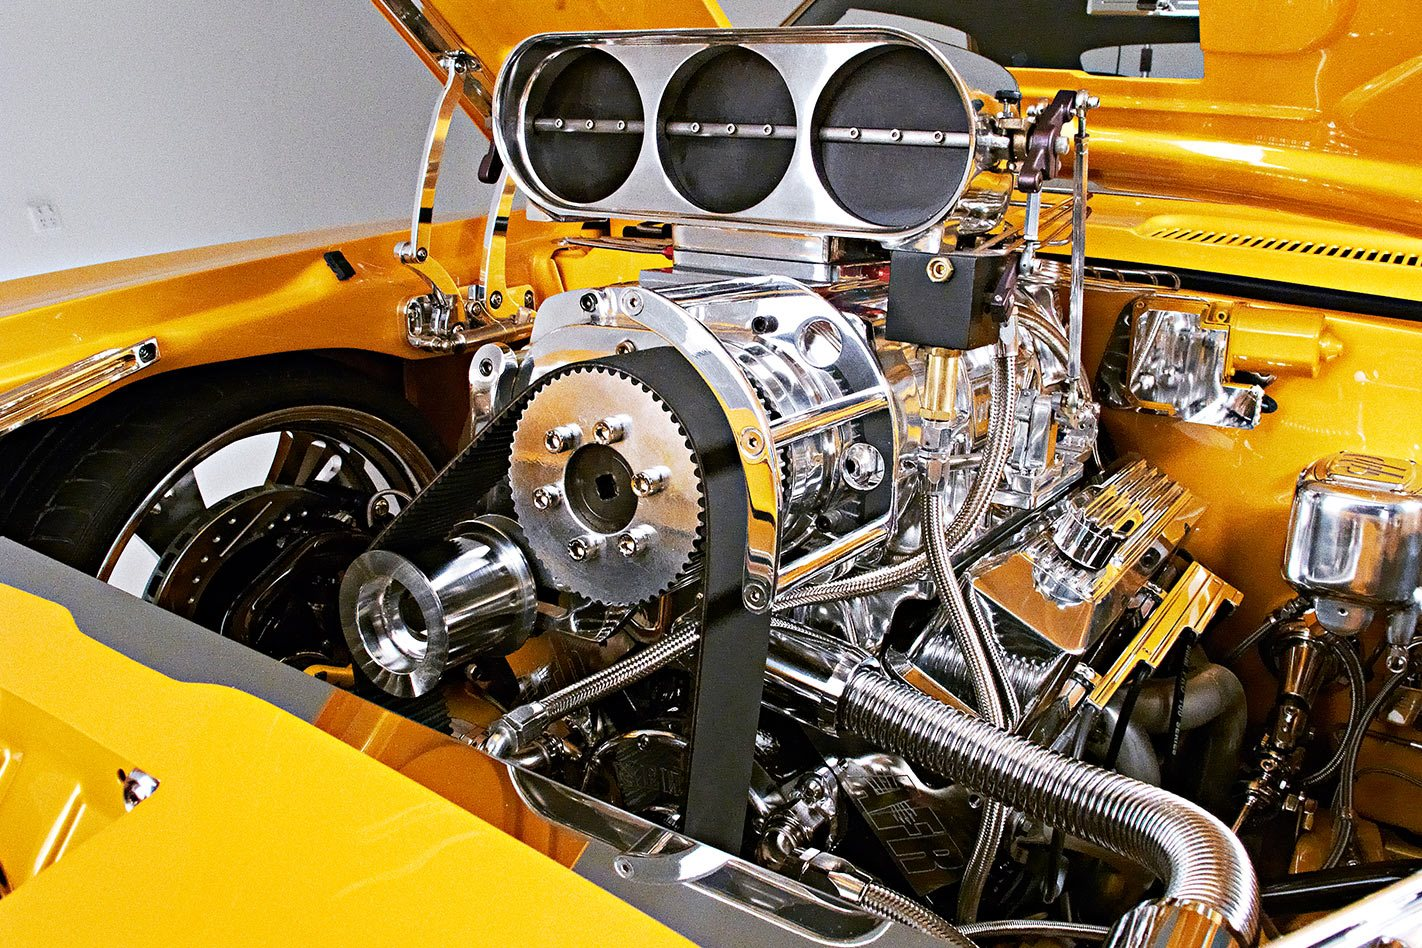 Chevrolet Camaro engine